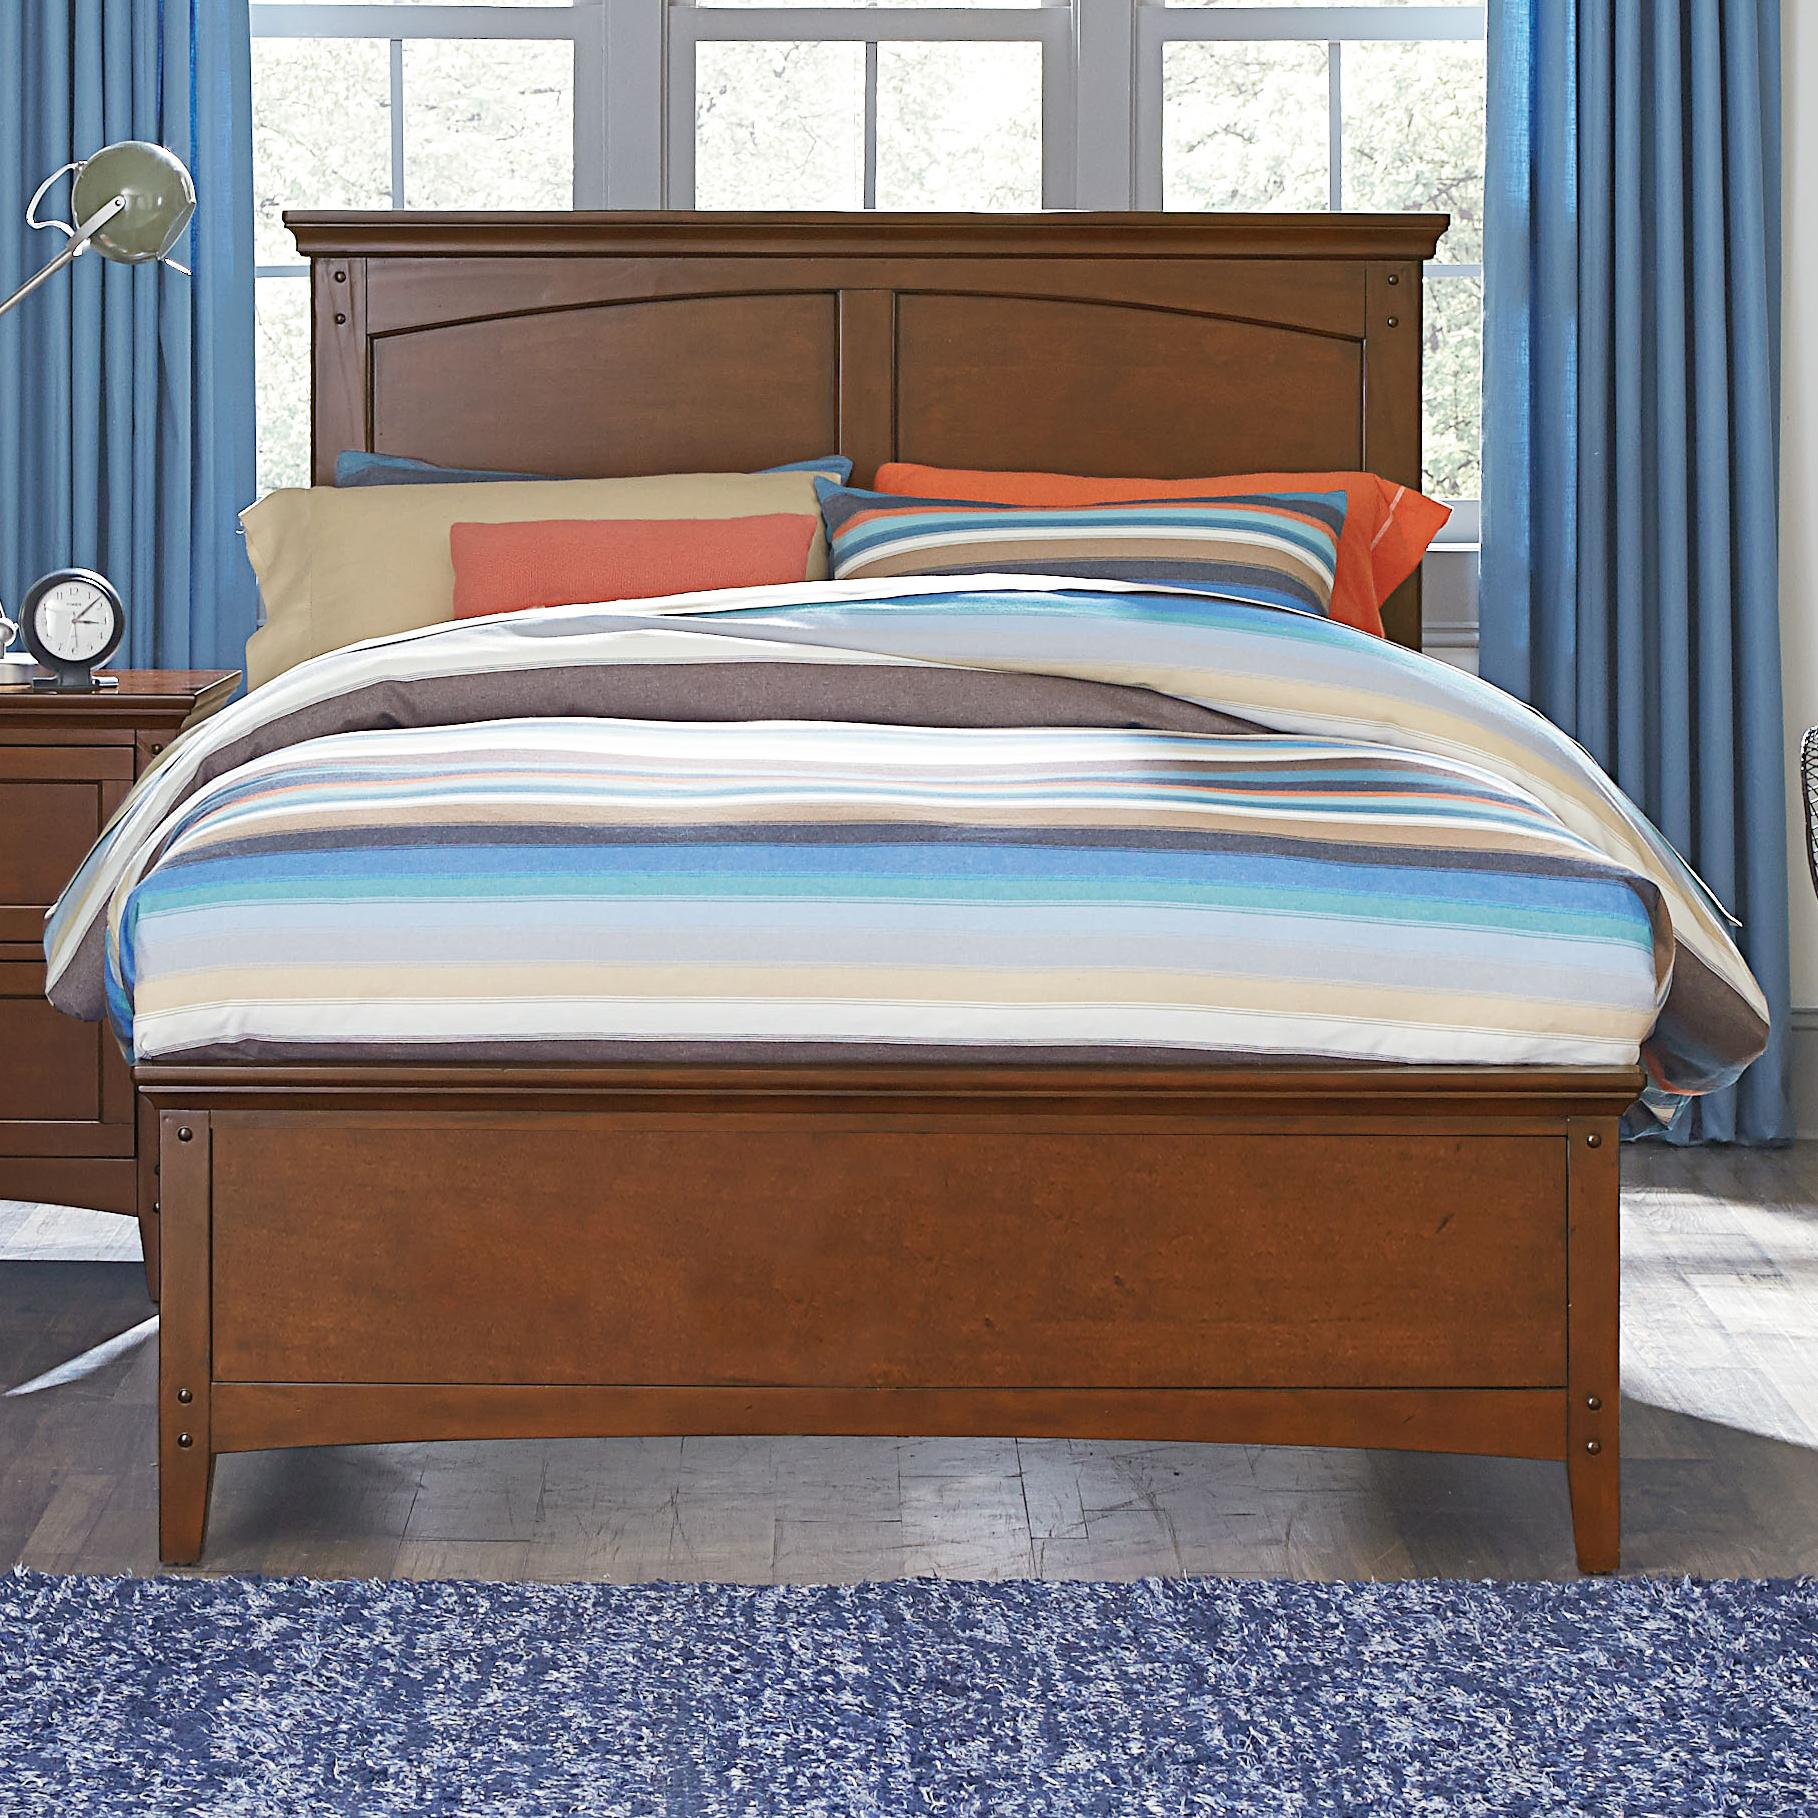 Standard Furniture Cooperstown Twin Panel Bed - Item Number: 93841+46+48